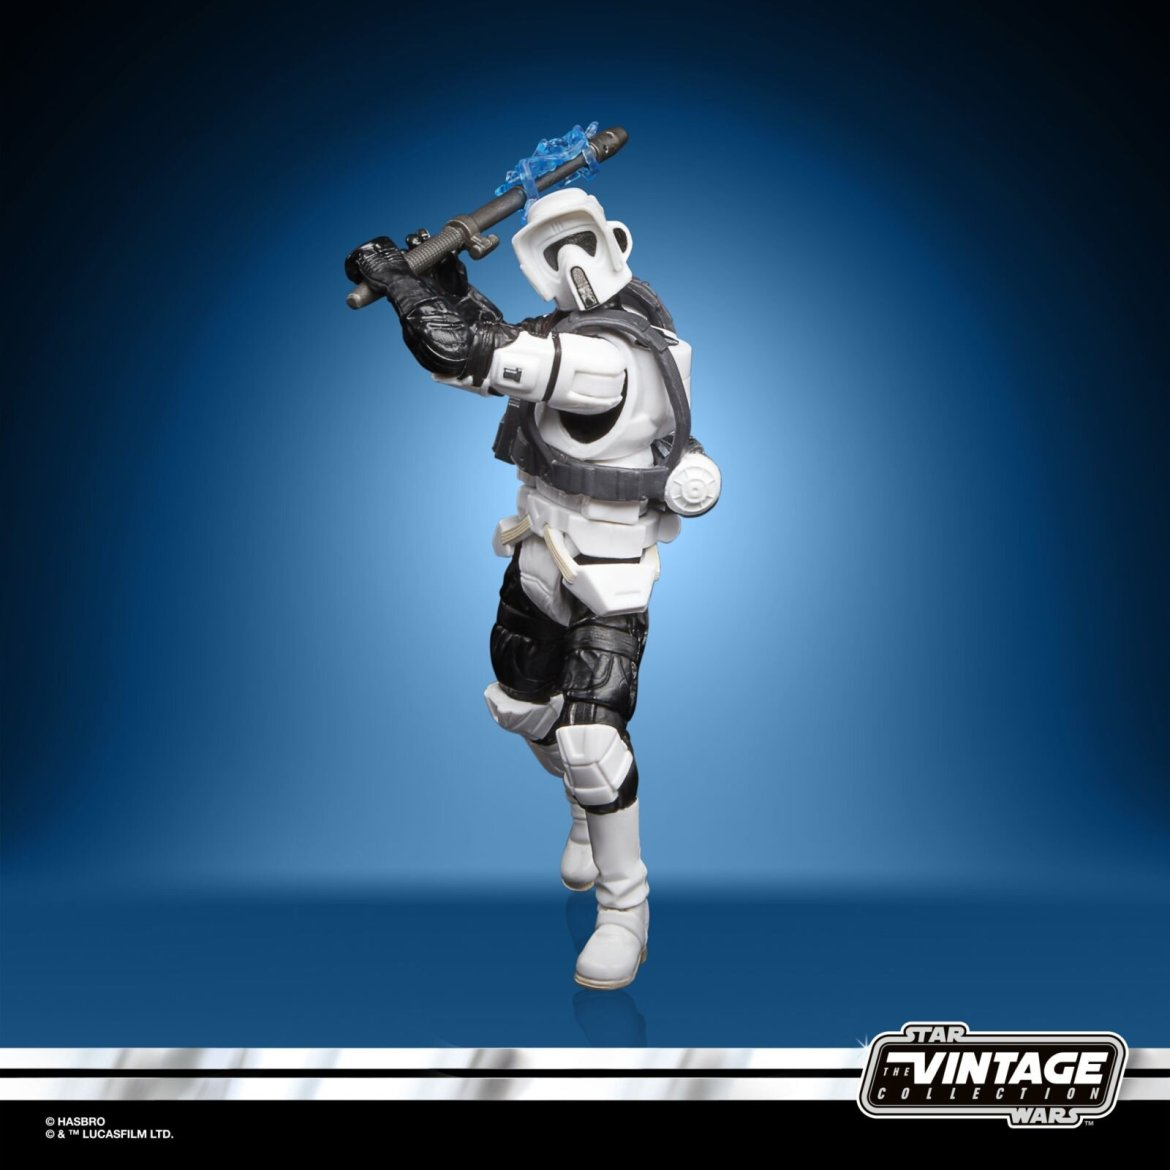 STAR WARS THE VINTAGE COLLECTION GAMING GREATS 3.75-INCH SHOCK SCOUT TROOPER Figure (9).jpg